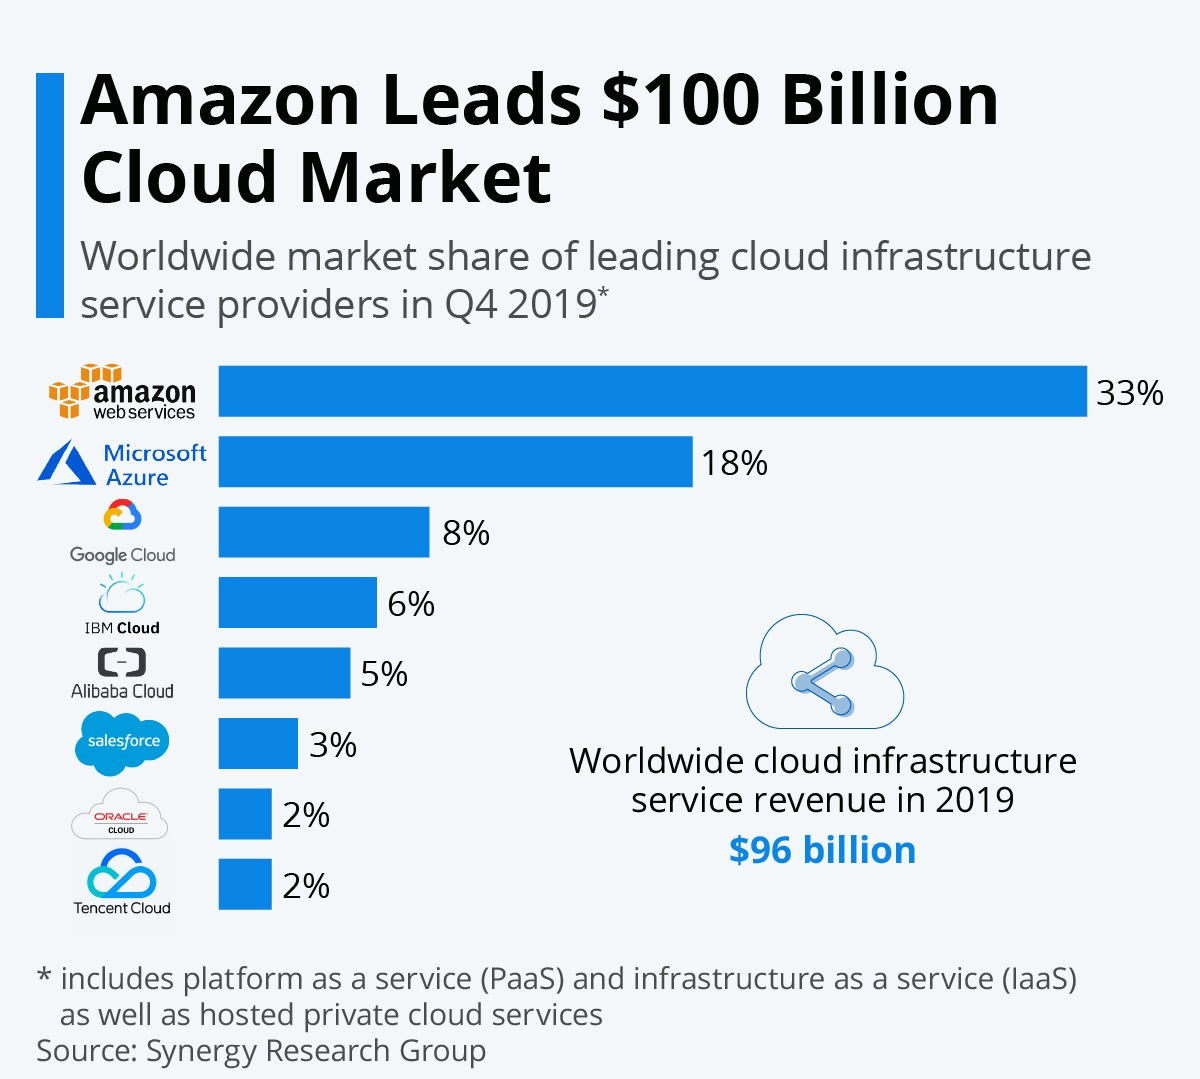 Market share of leading cloud infrastructure service providers in Q4 2019